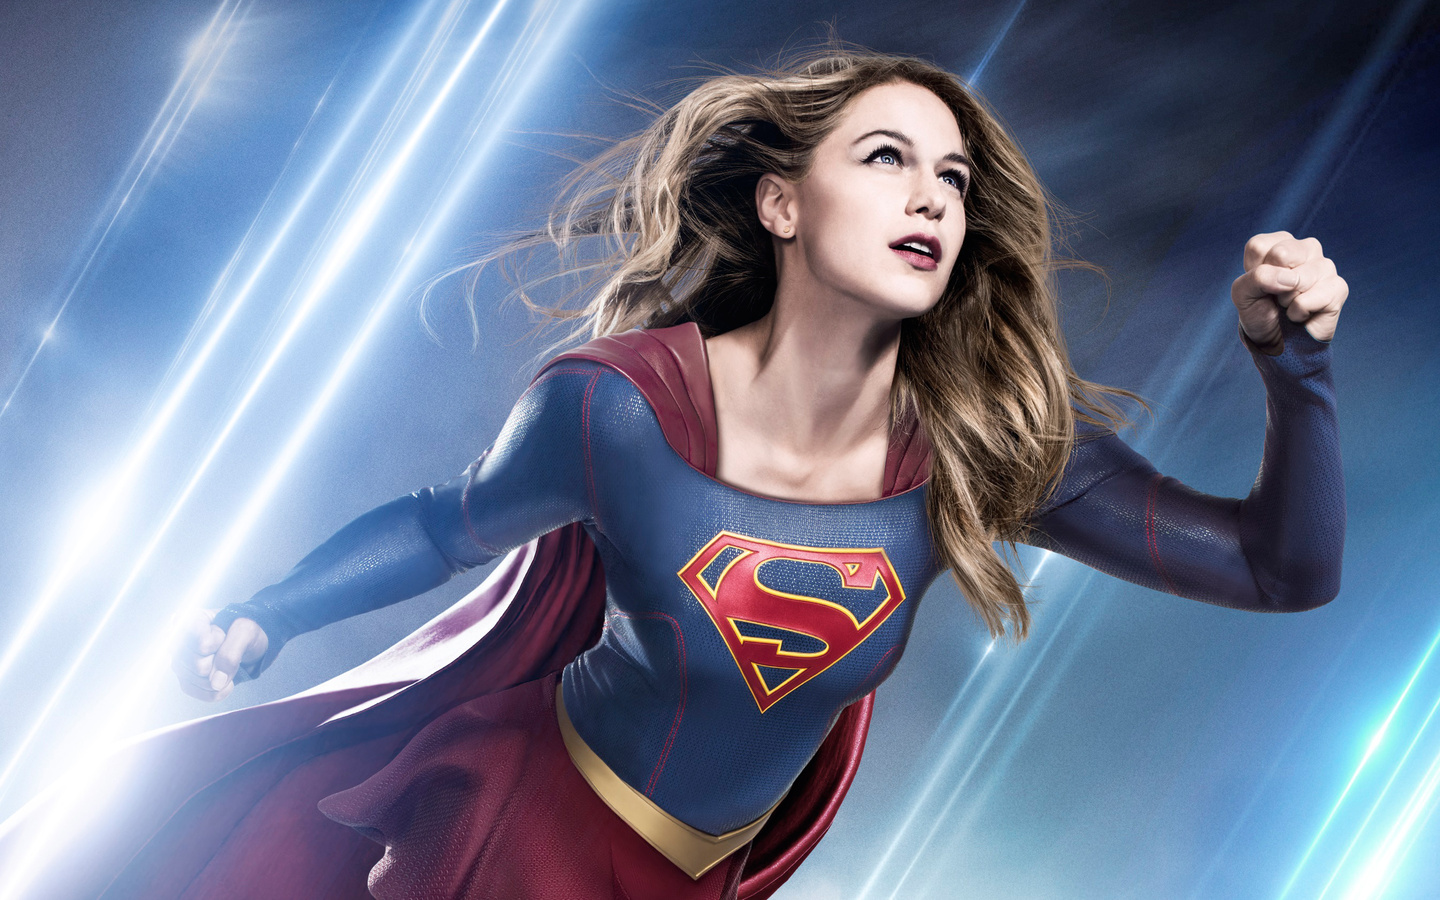 Download Wallpaper 1440x900 Supergirl, Kara danvers, Melissa ...